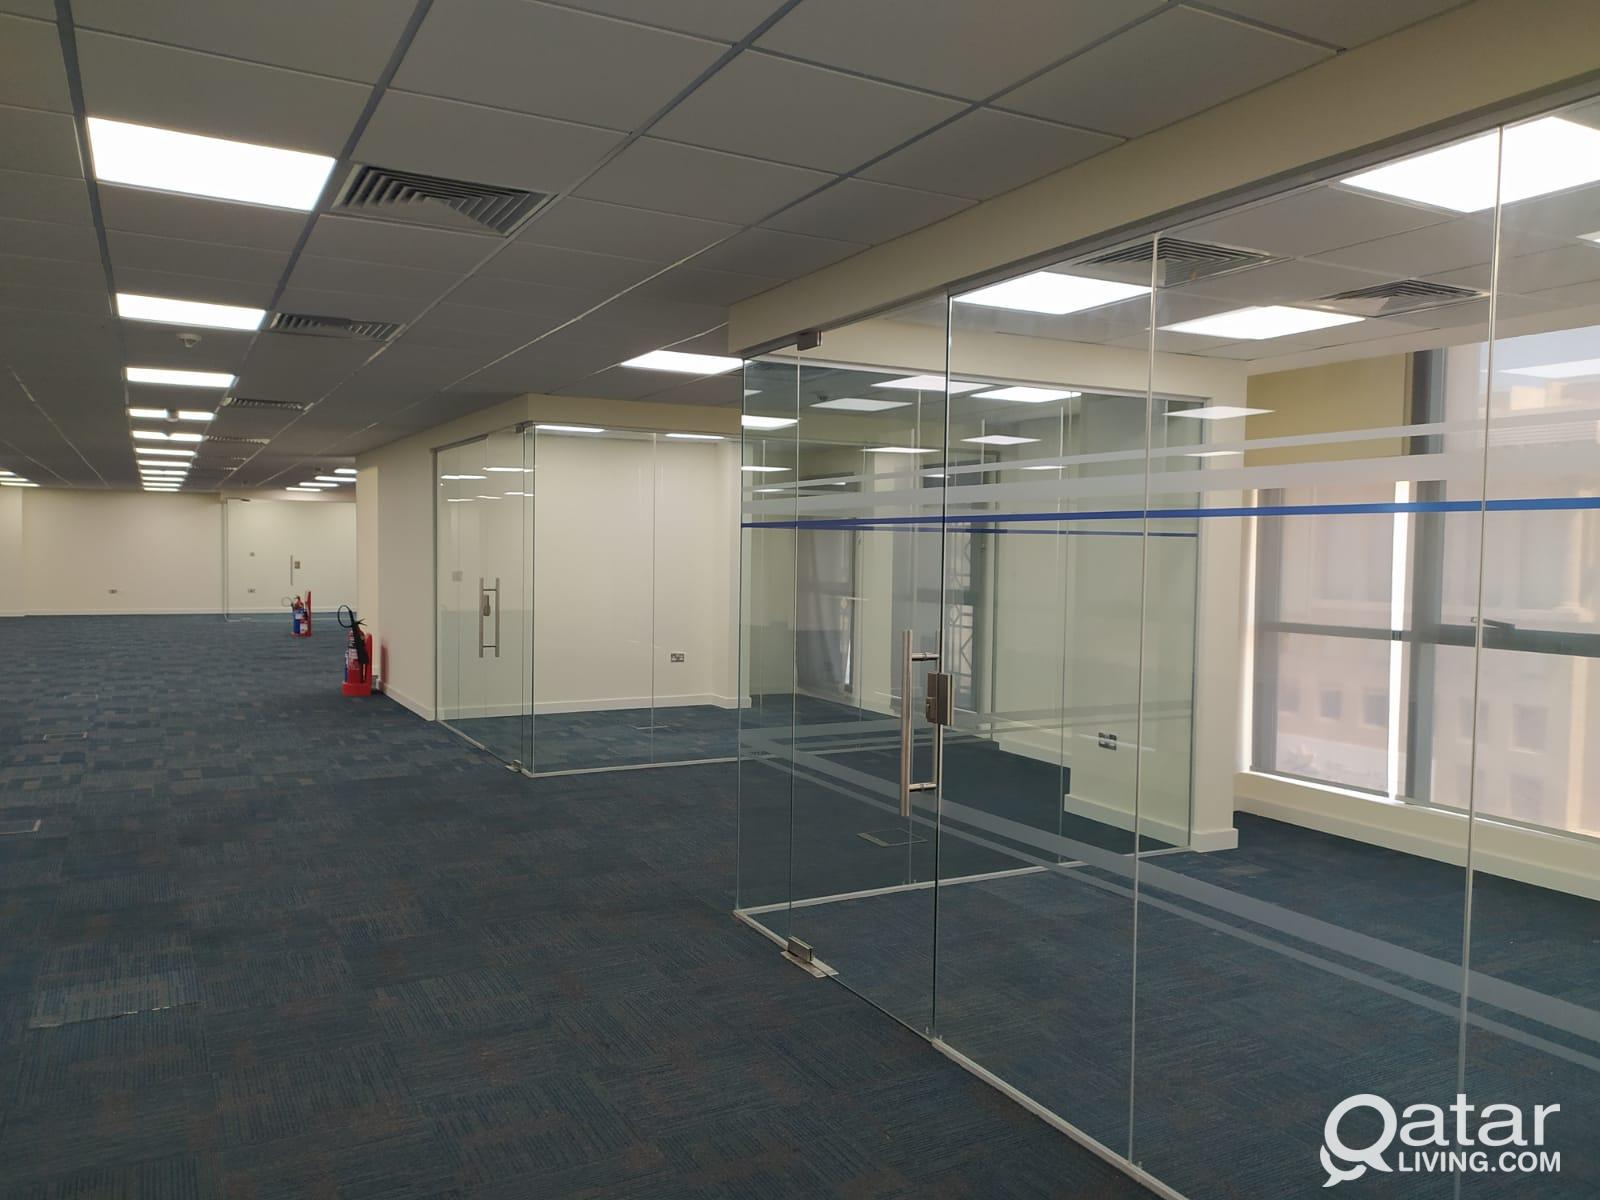 235 Sqm Glass Partitioned Office Space Available i